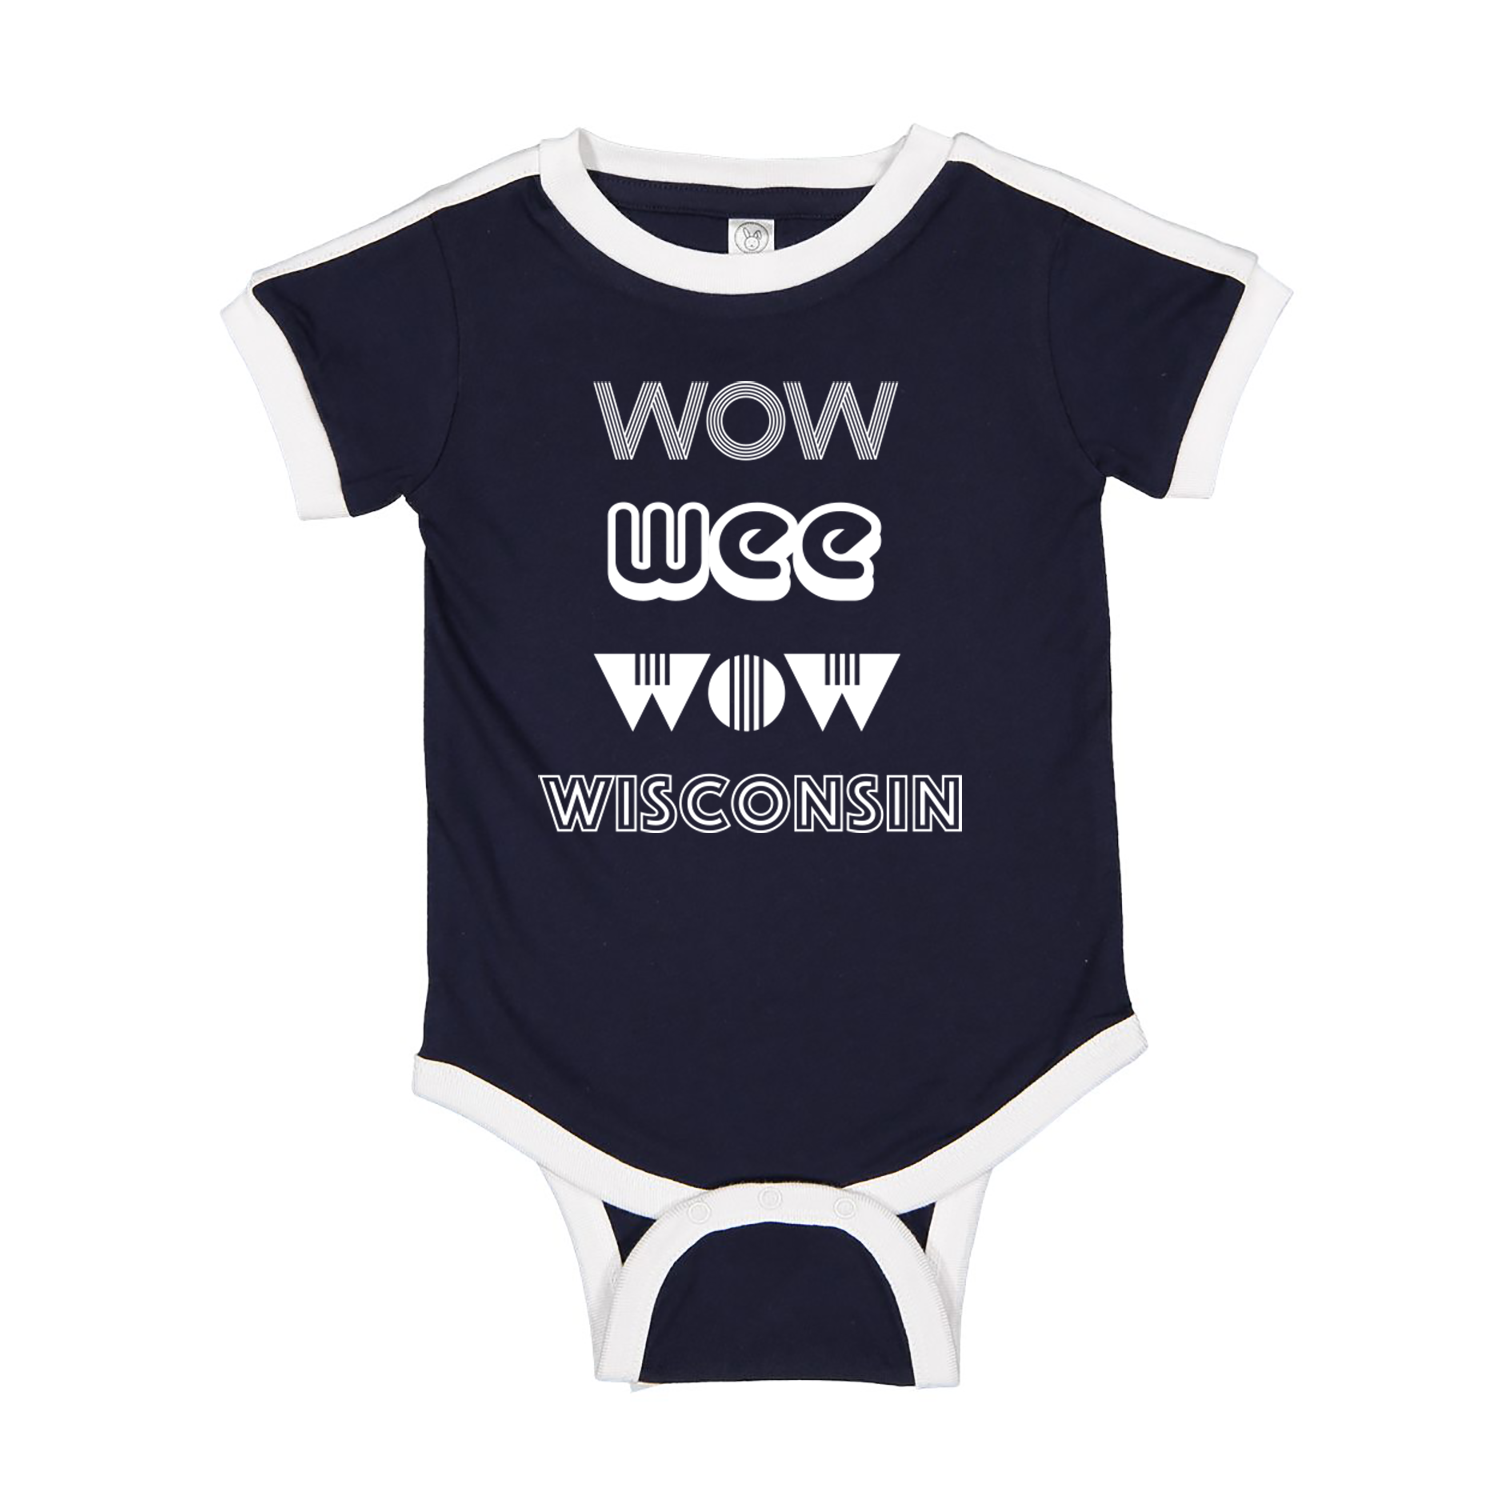 Wow Wee Wow Wisconsin Ringer Onesie - Navy & White